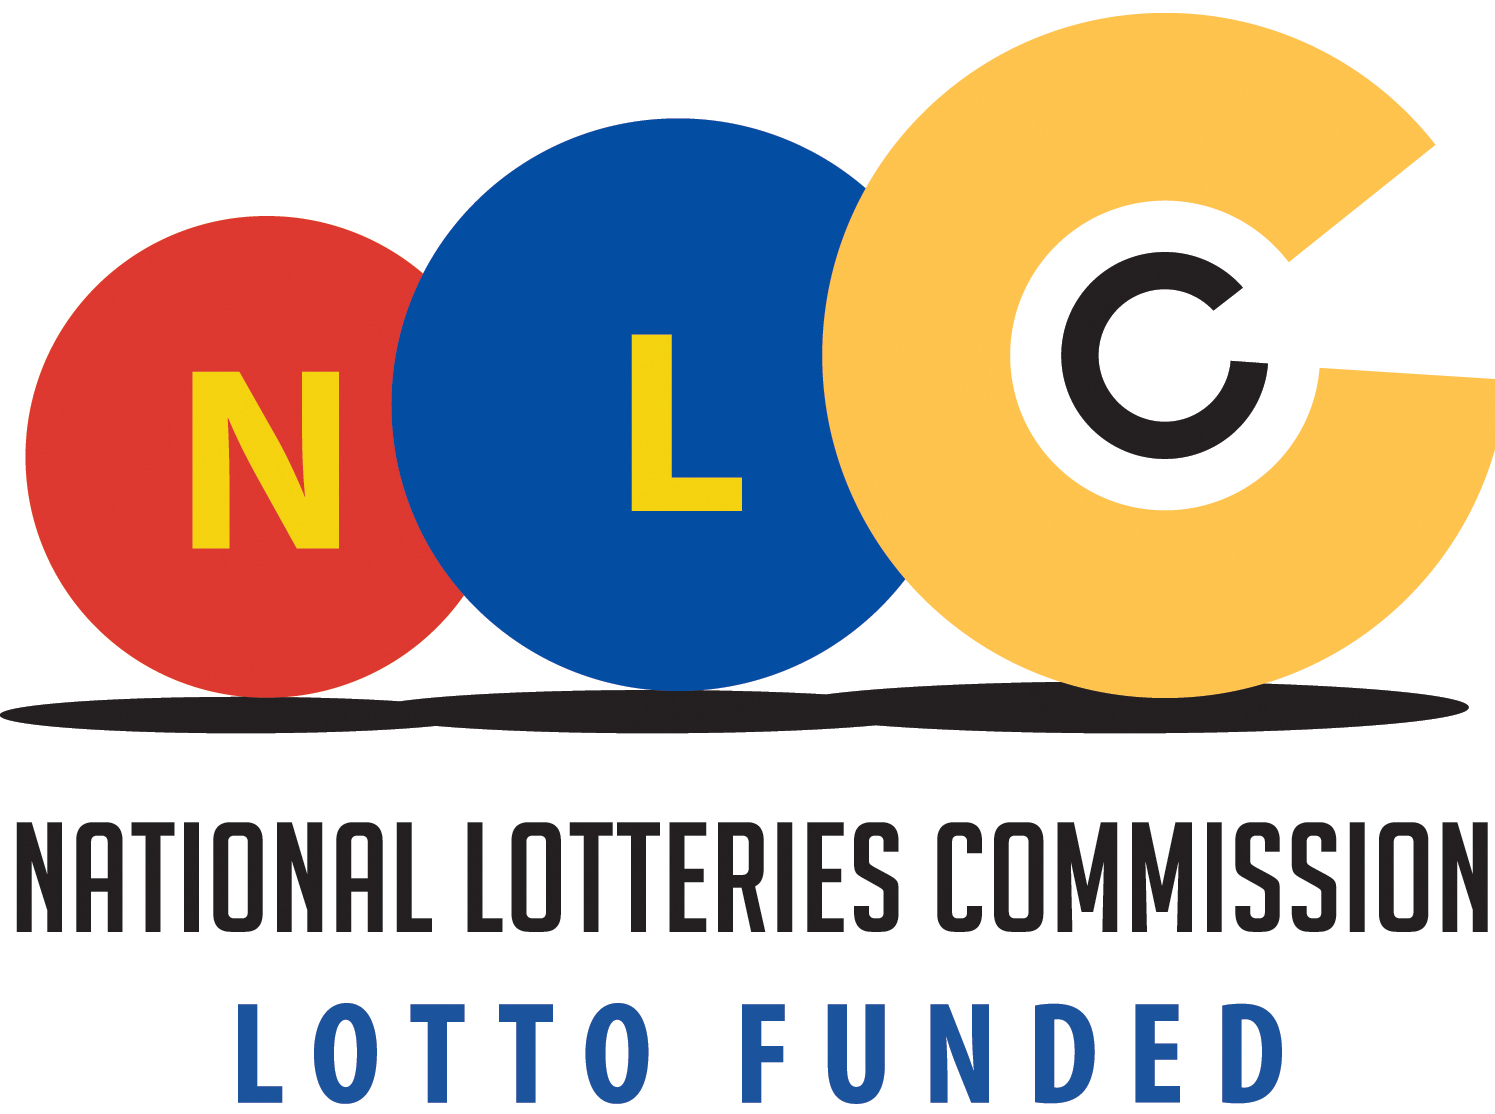 NLC tries to block answers on R7 million Carol Bouwer grant